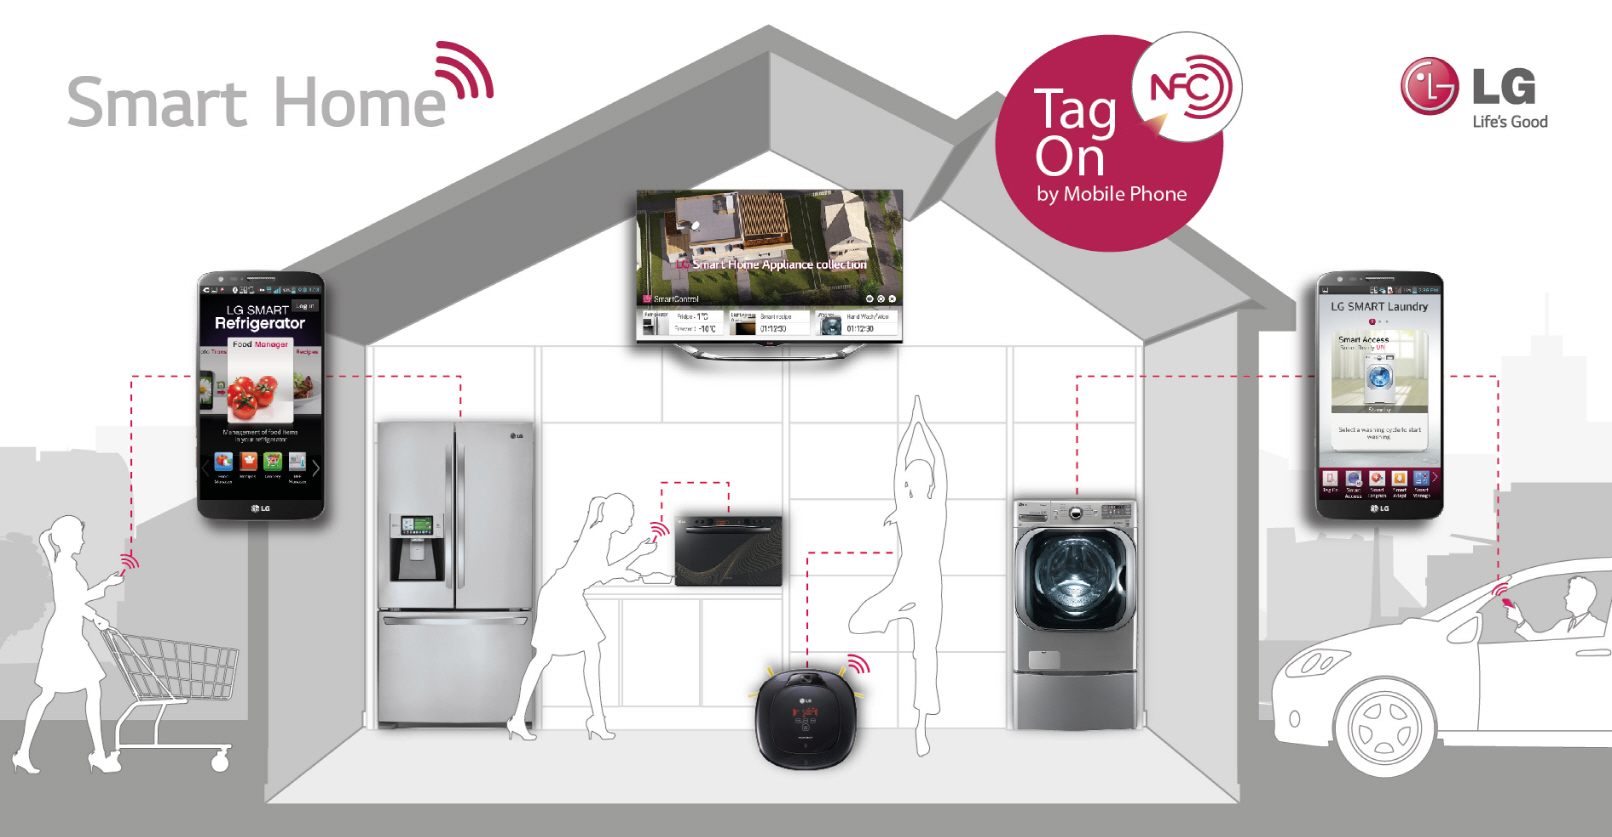 Infographic showing an LG smart home with connected smart appliances, including a TV, refrigerator, washing machine, microwave oven and vacuum cleaner which are all compatible with the Smart Control app